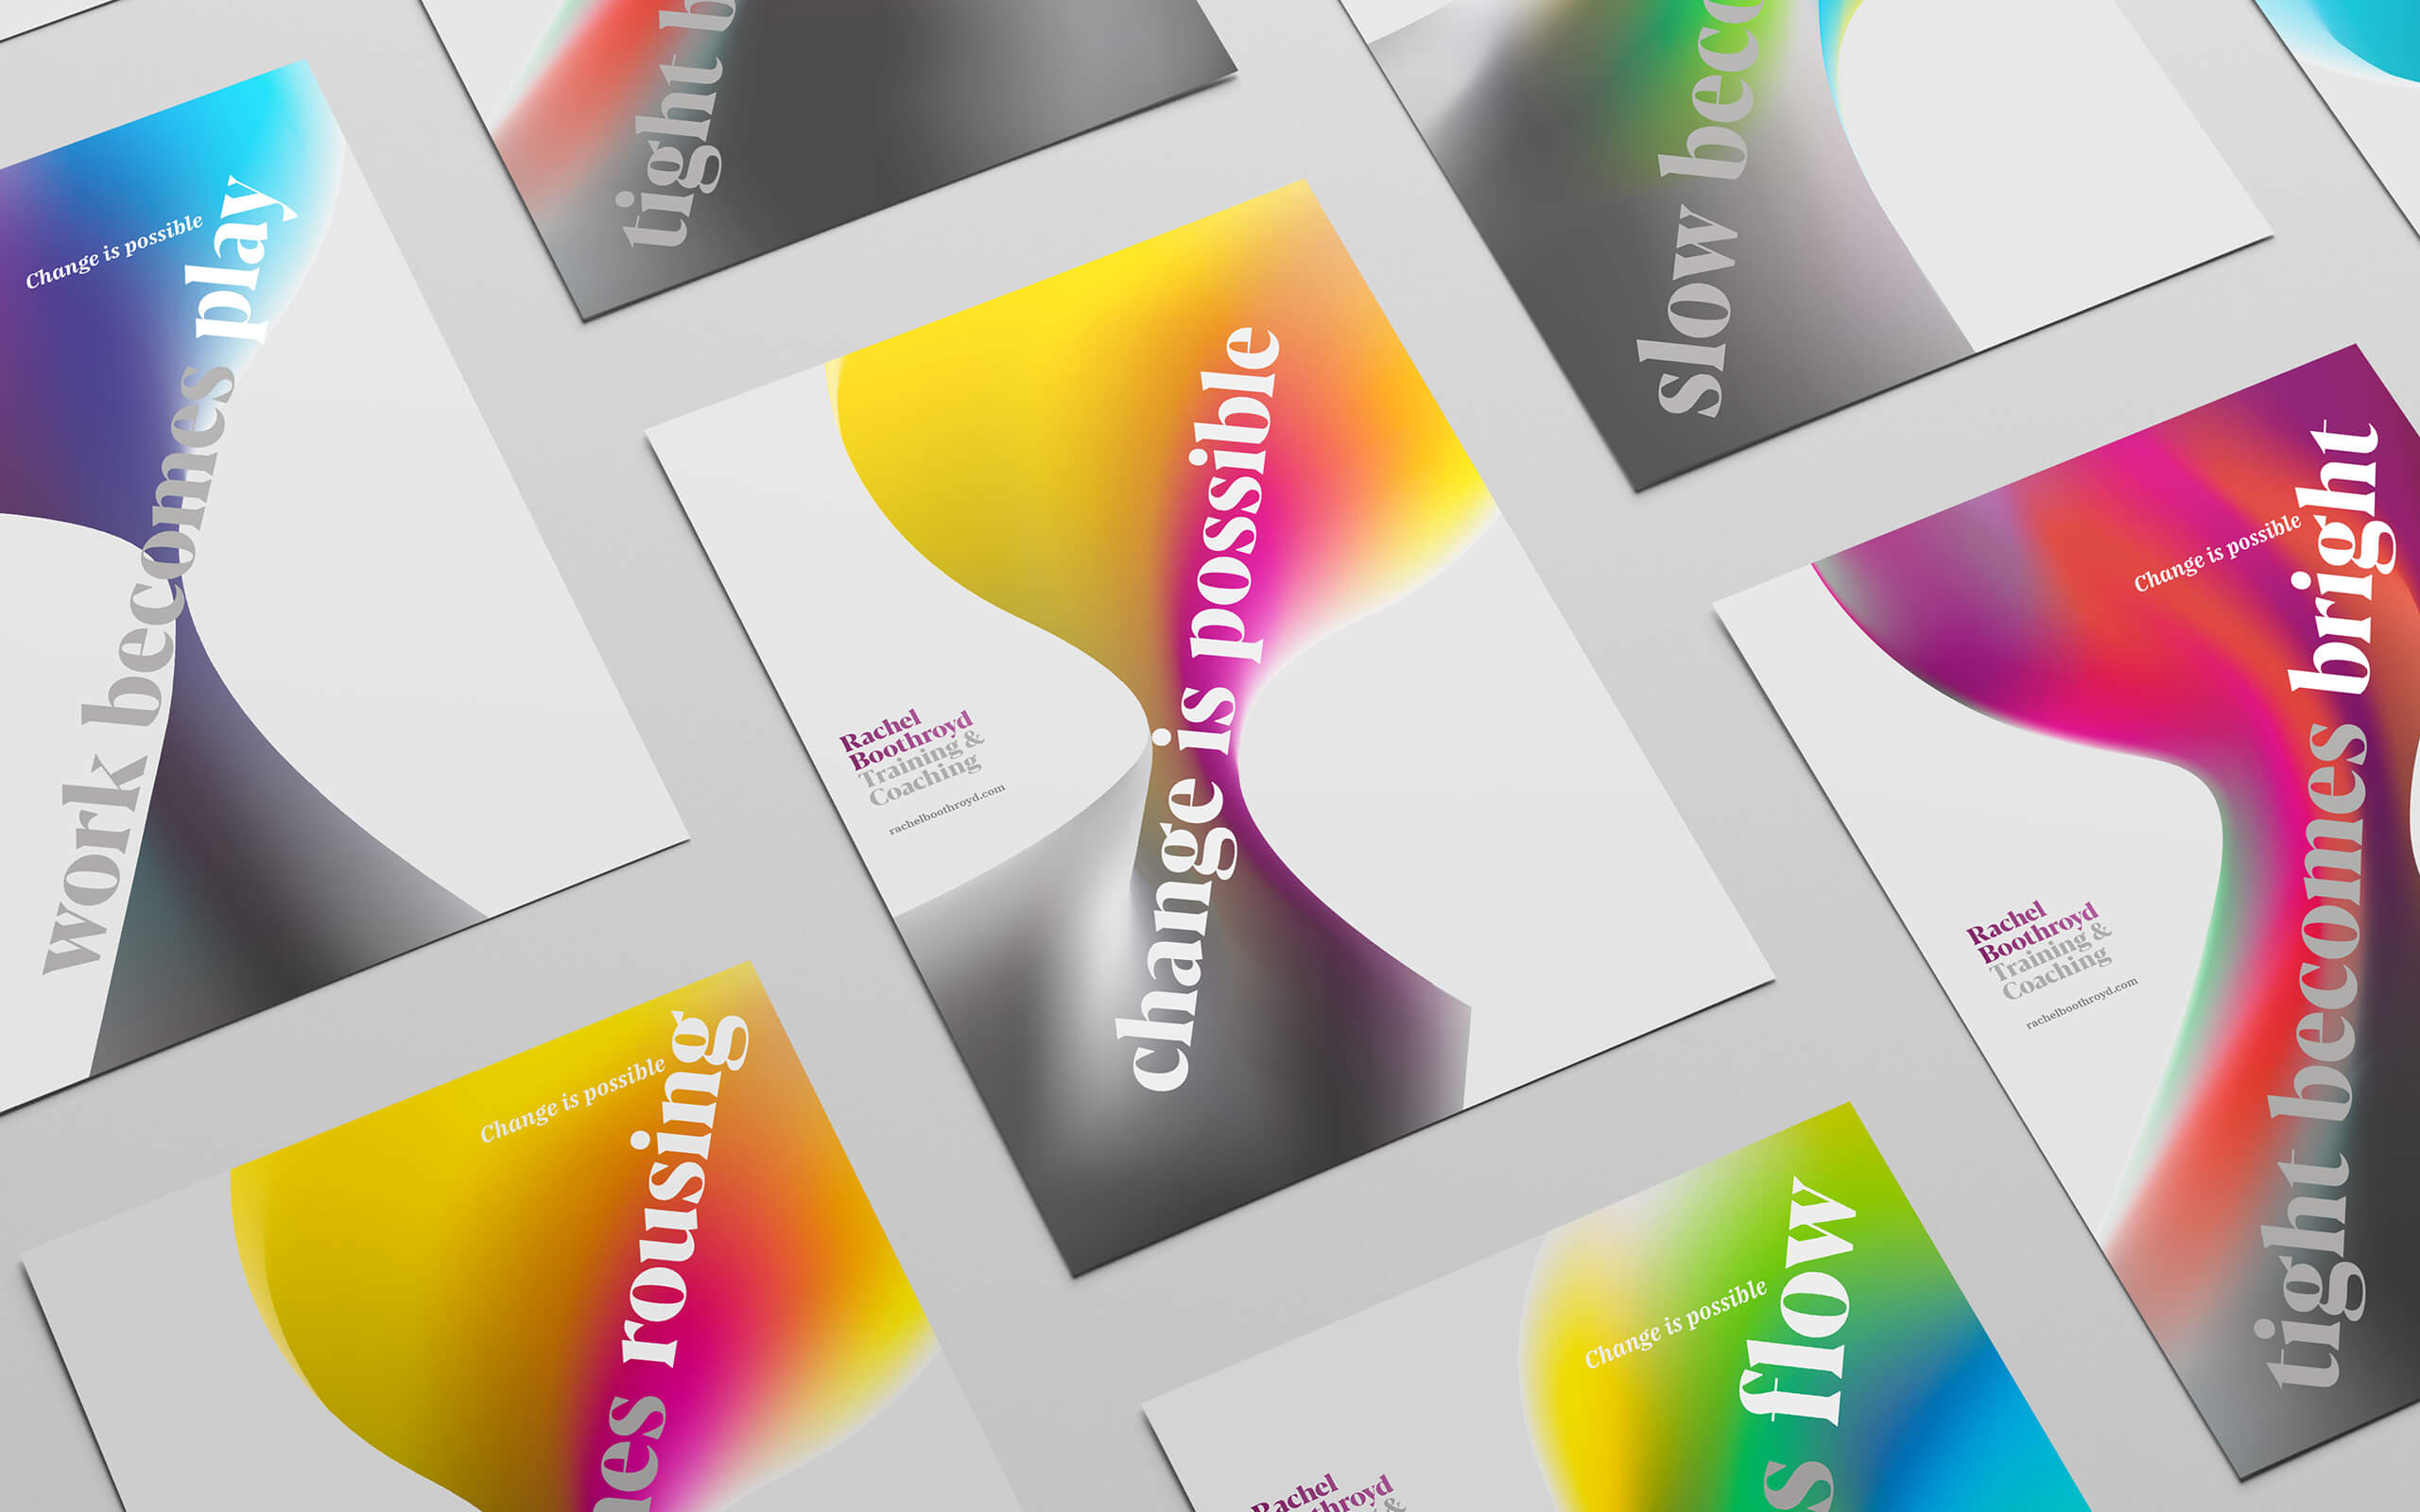 Taller Design Creates New Brand for Mental Wellbeing in the Workplace